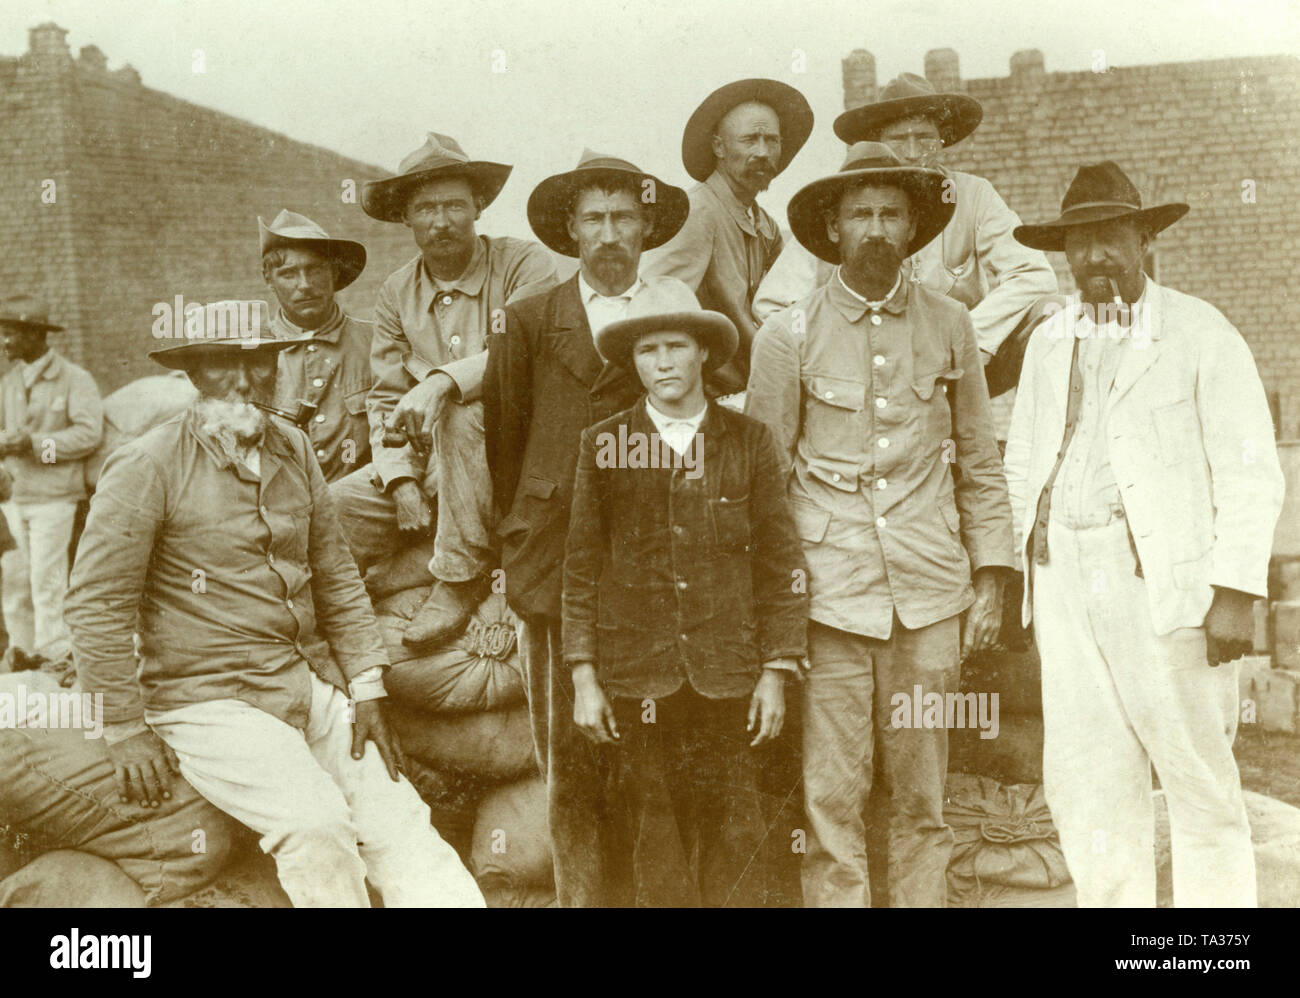 Boer men working for German colonialists in German South West Africa. - Stock Image